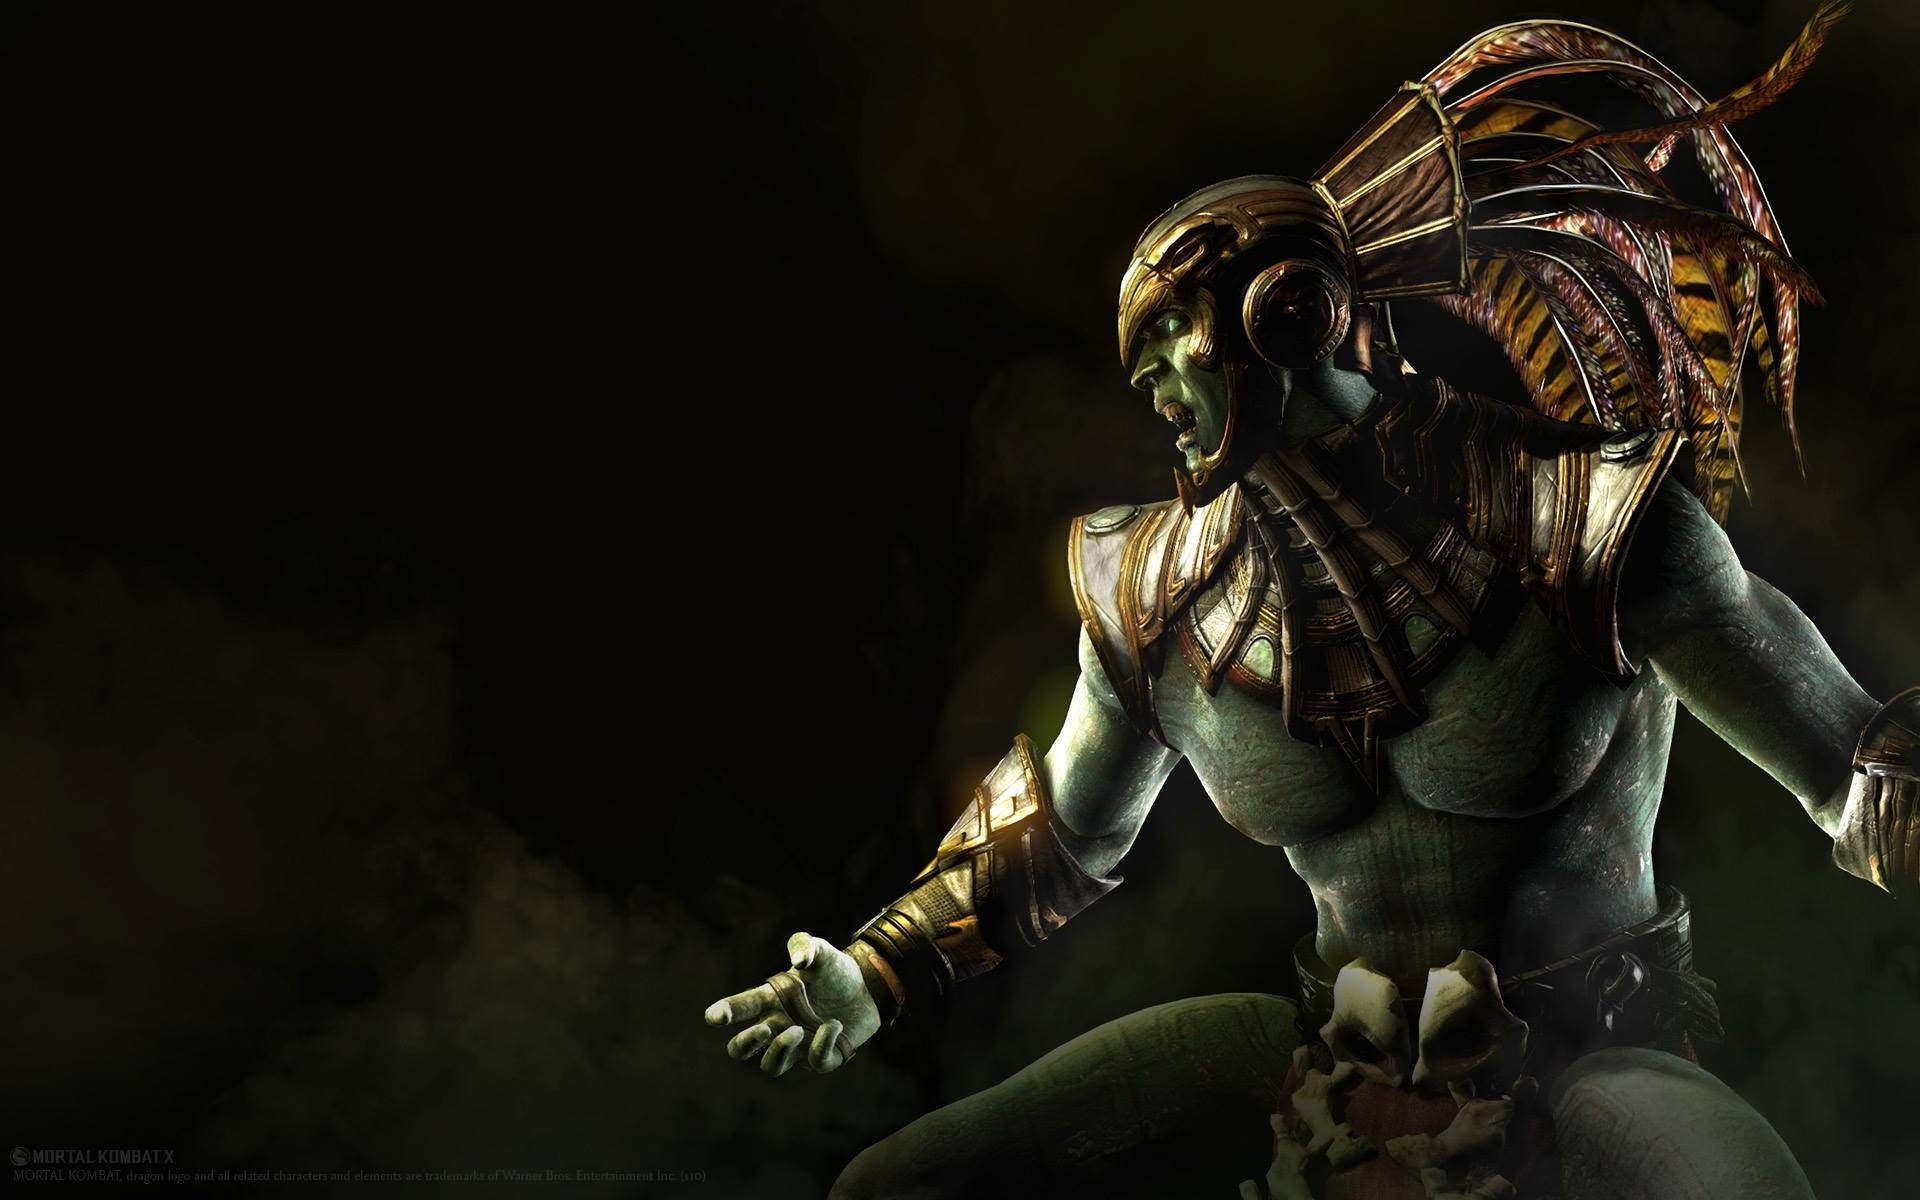 Kotal Kahn Mortal Kombat X Wallpapers in jpg format for free download 8f3b0b4b41bc